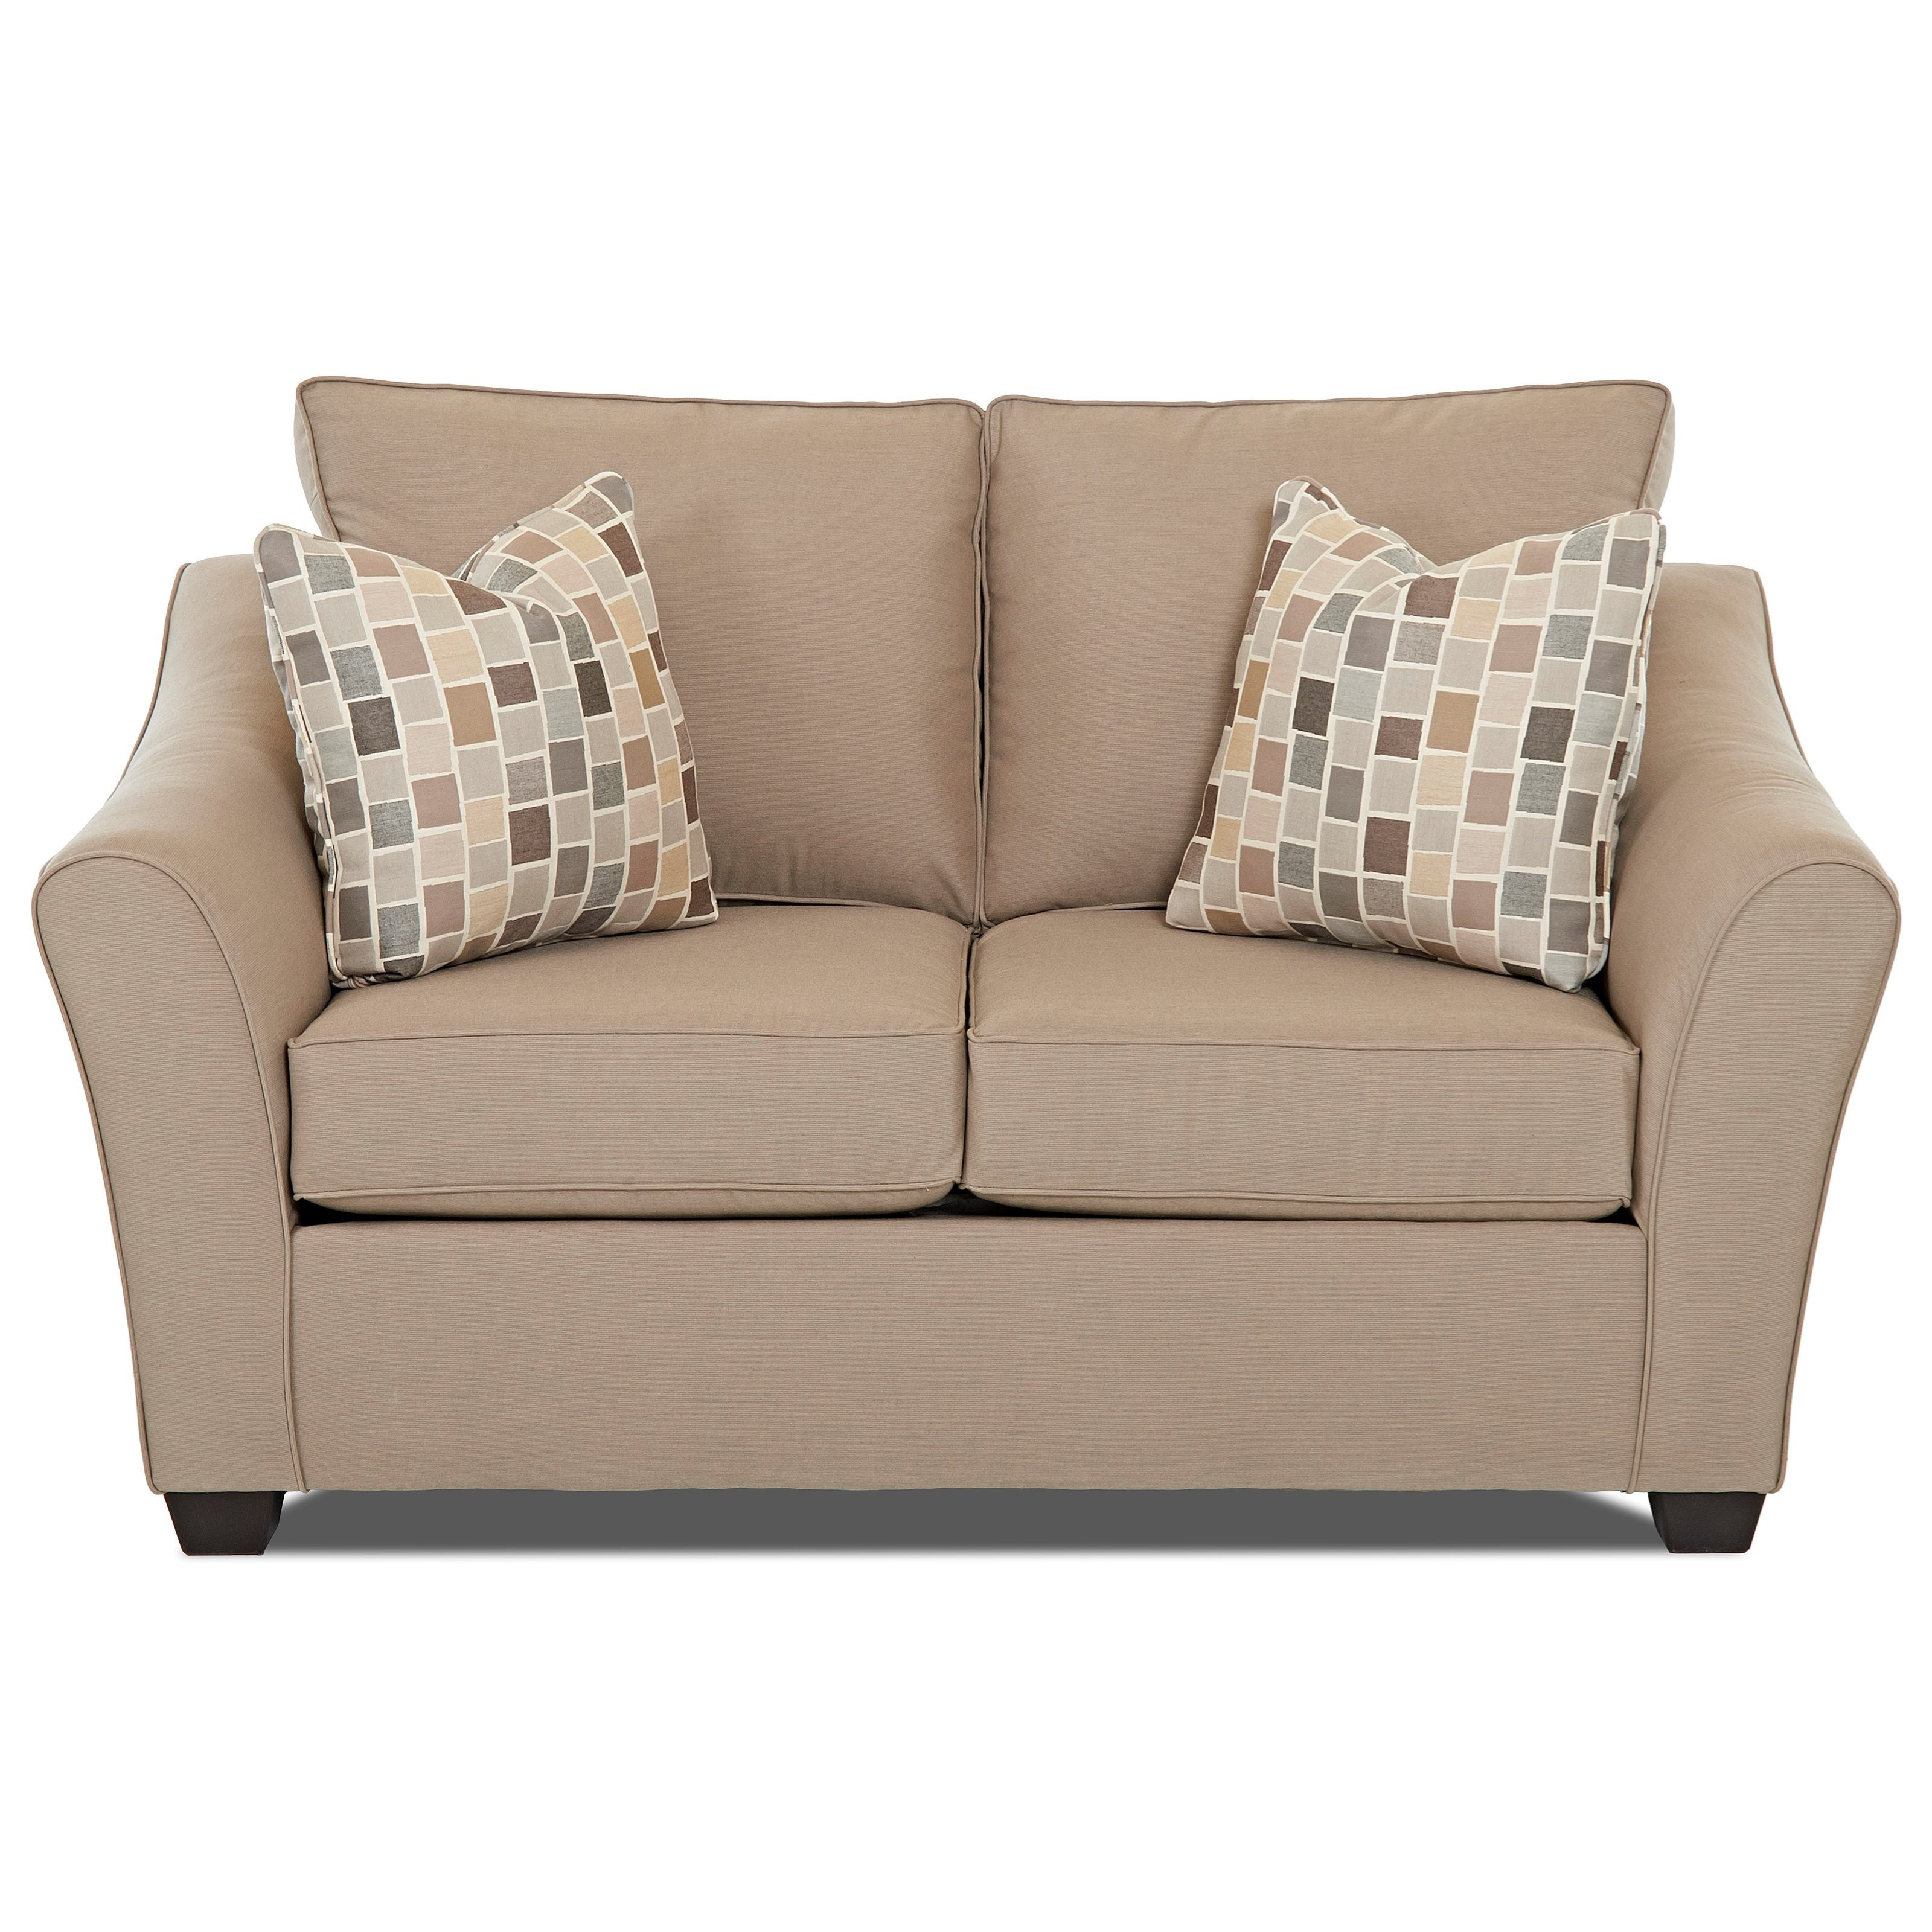 Linville Loveseat by Klaussner at Johnny Janosik